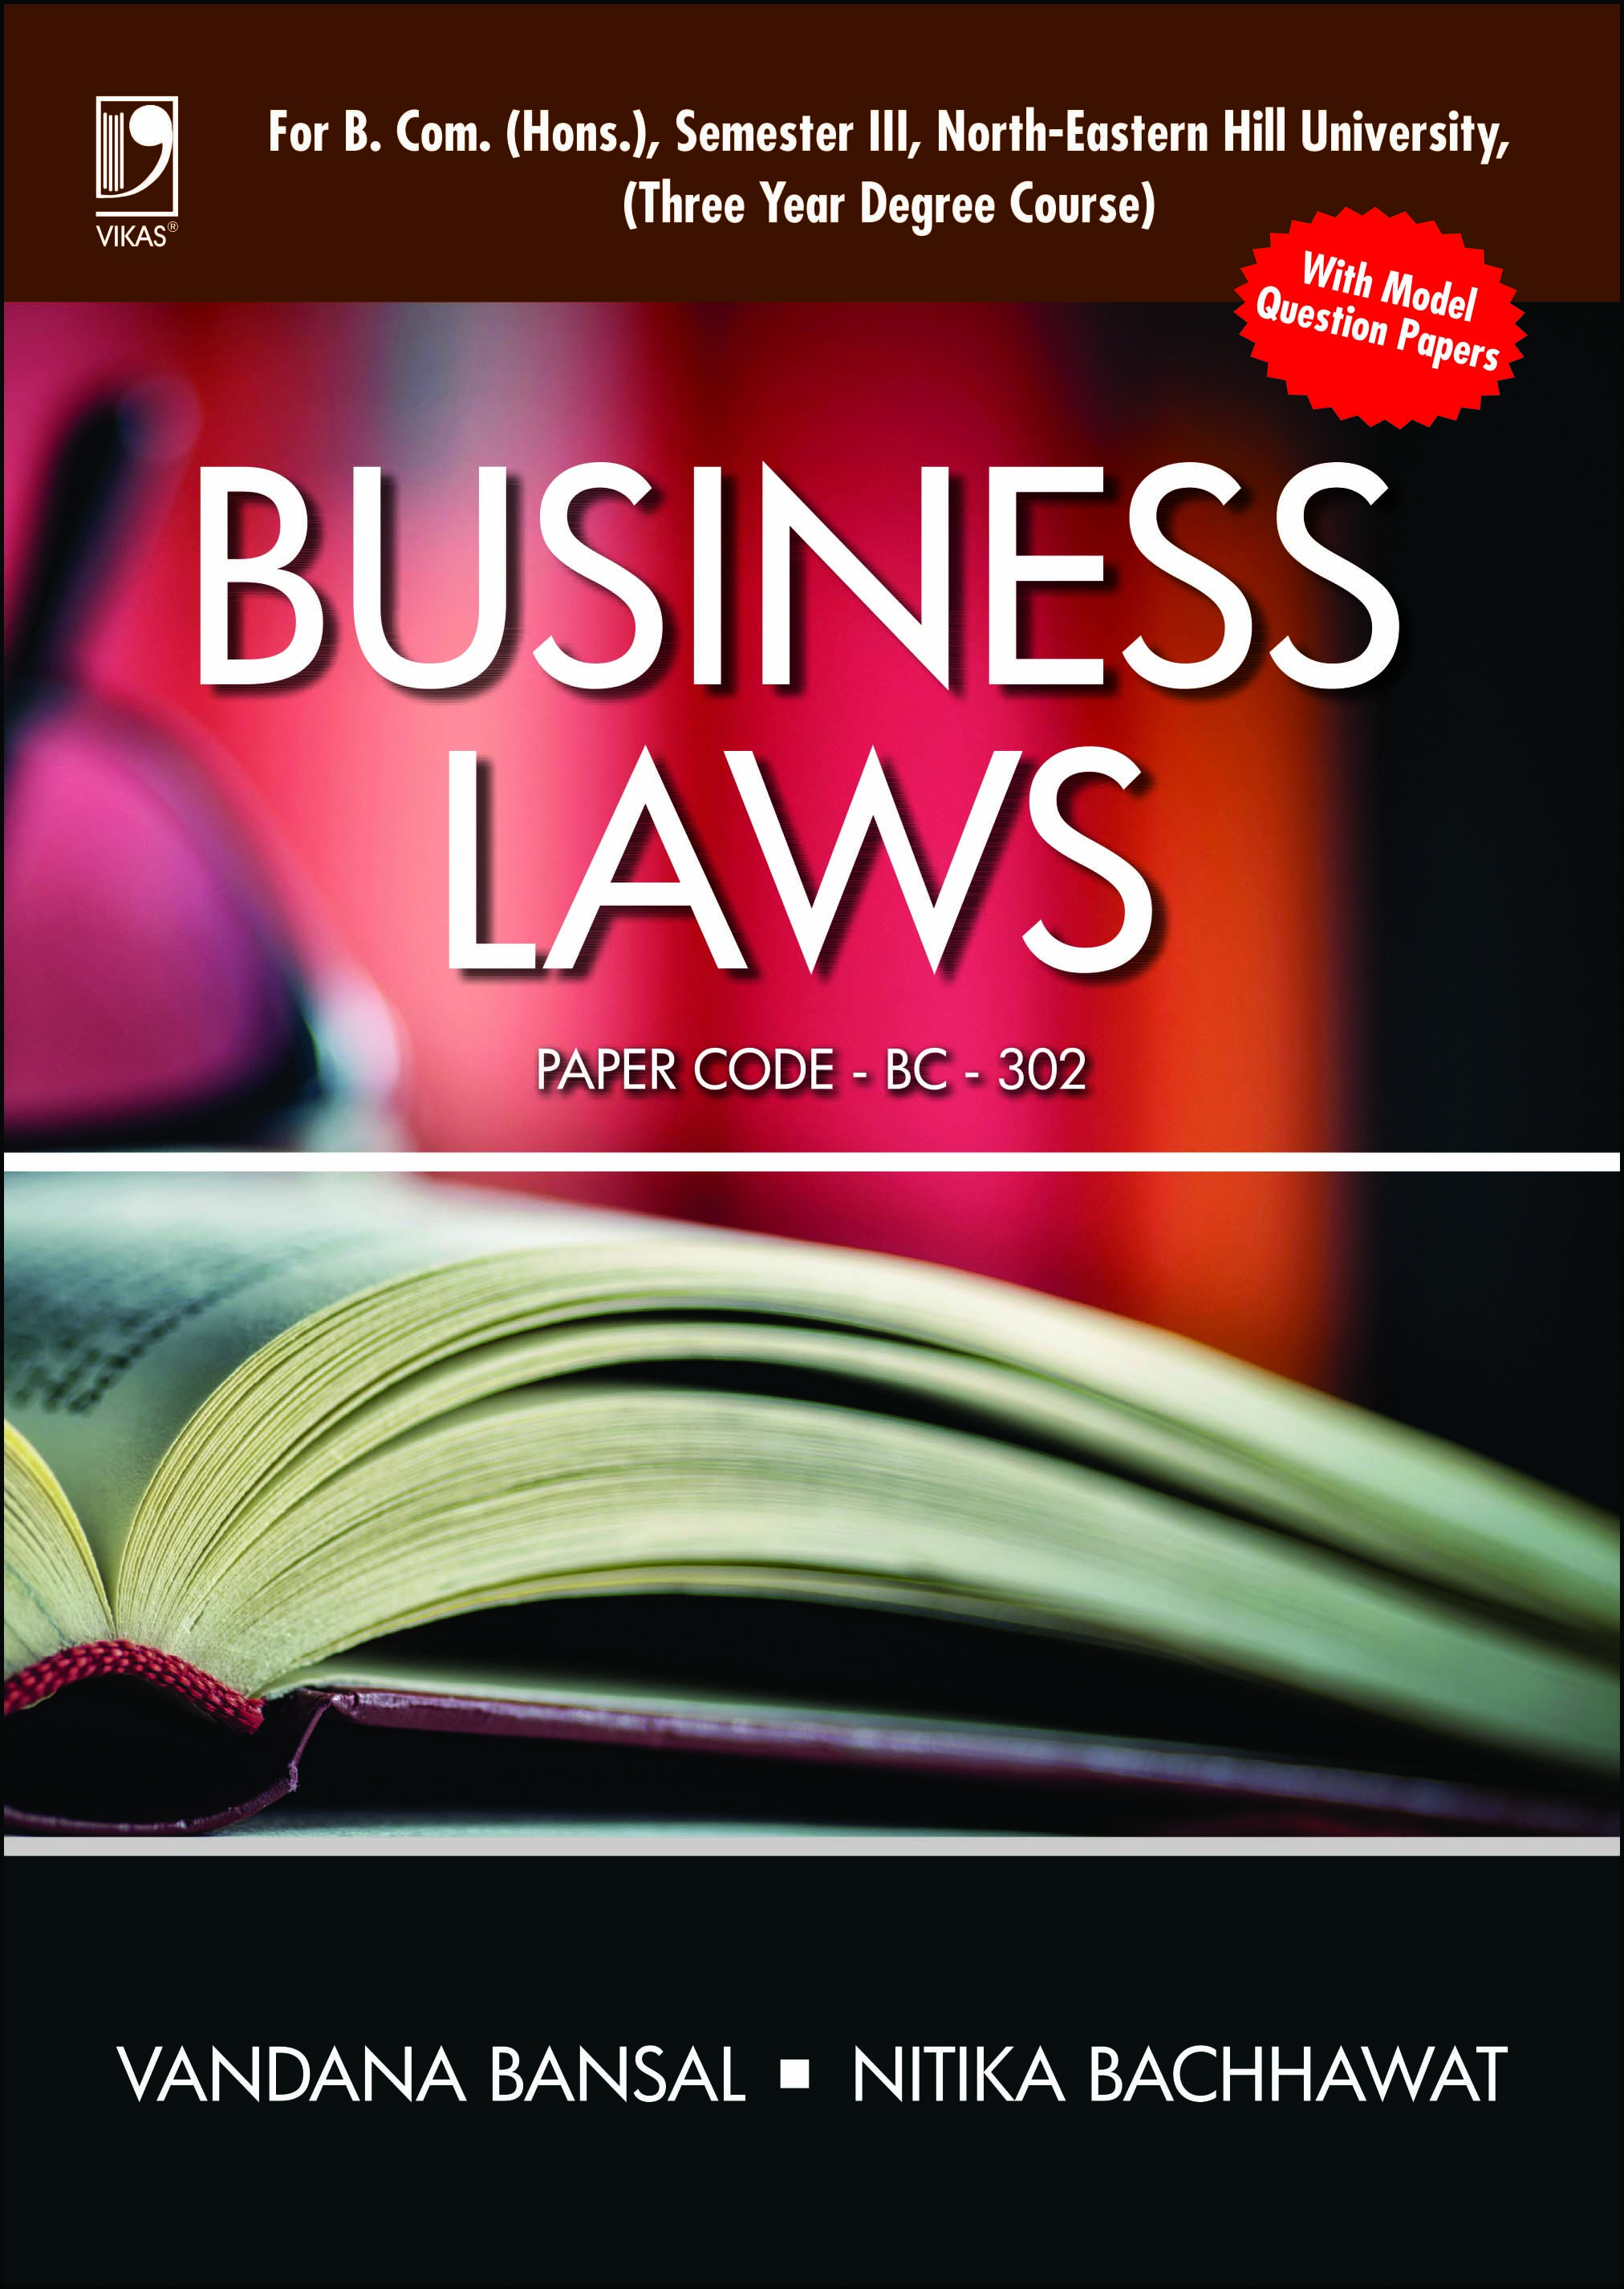 BUSINESS LAWS: (FOR NORTH-EASTERN HILL UNIVERSITY)